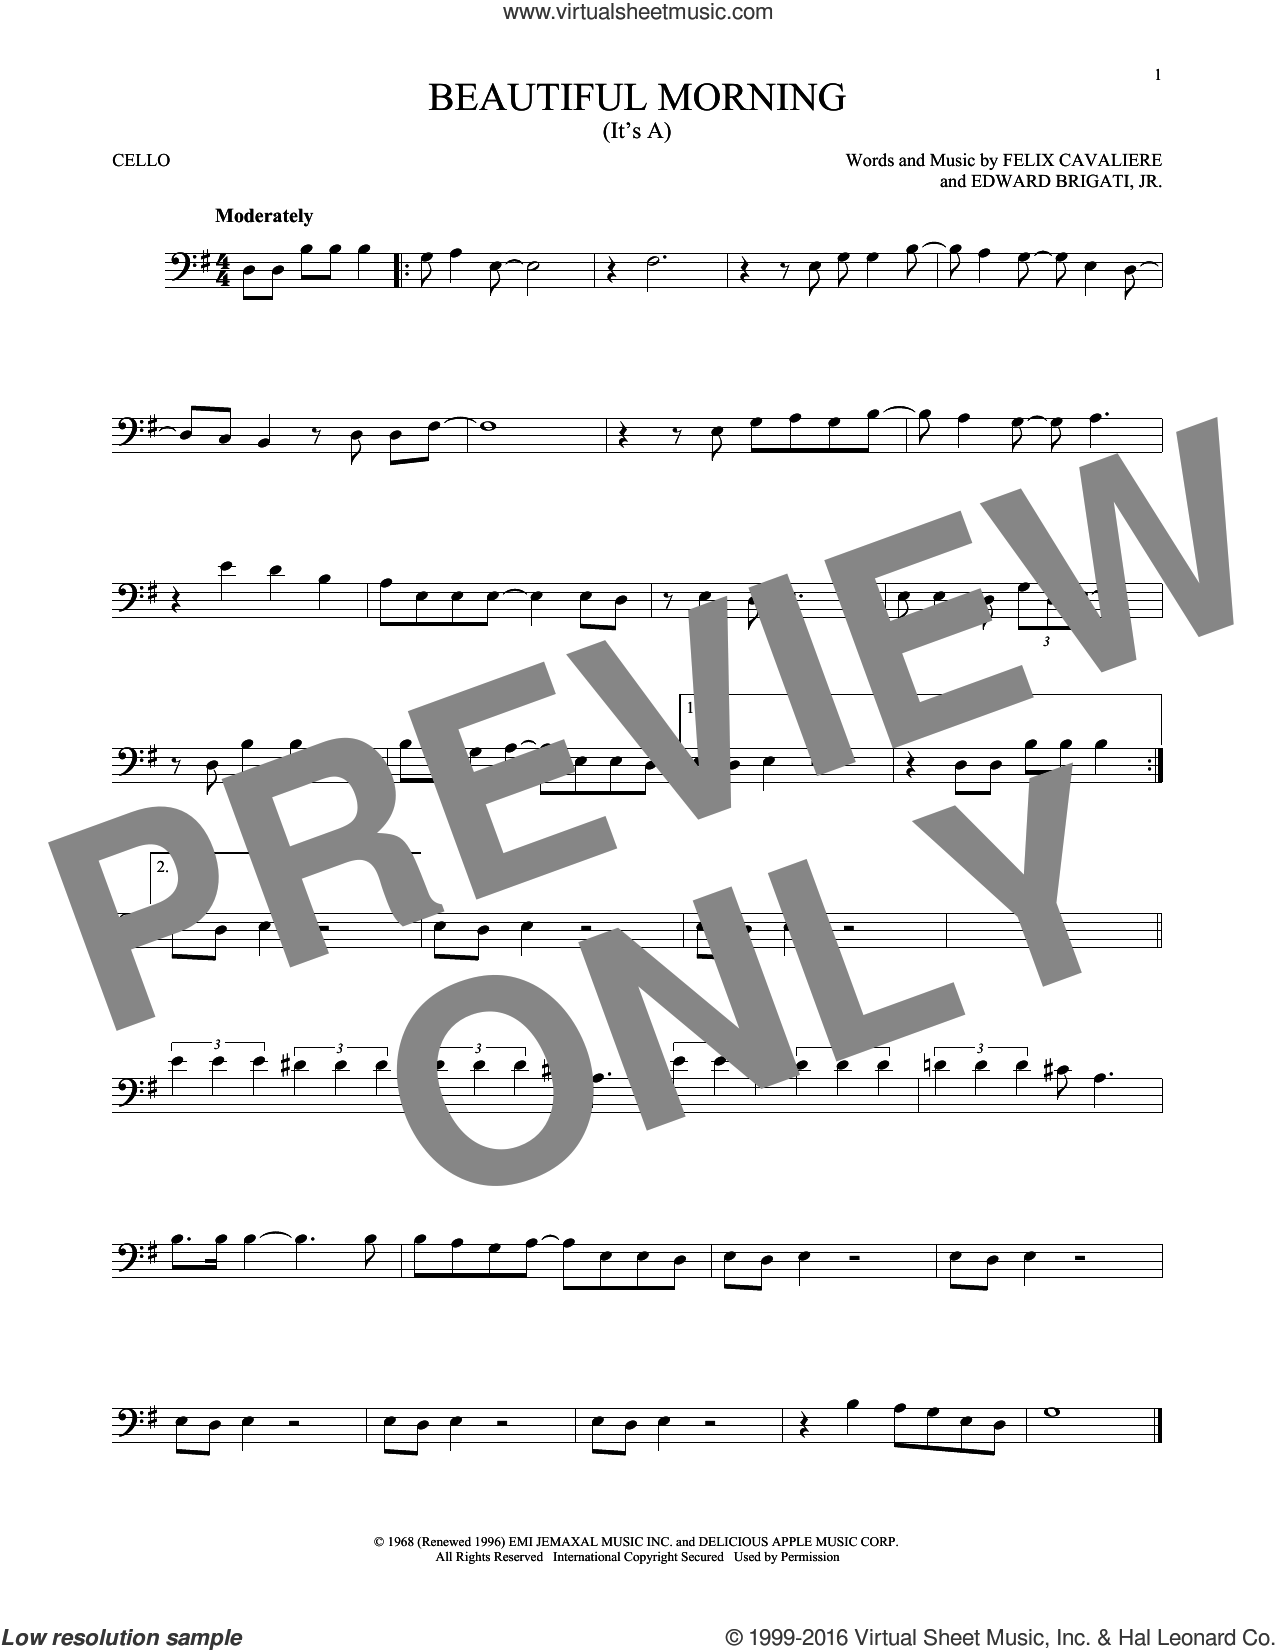 (It's A) Beautiful Morning sheet music for cello solo by The Rascals, Edward Brigati, Jr. and Felix Cavaliere, intermediate skill level